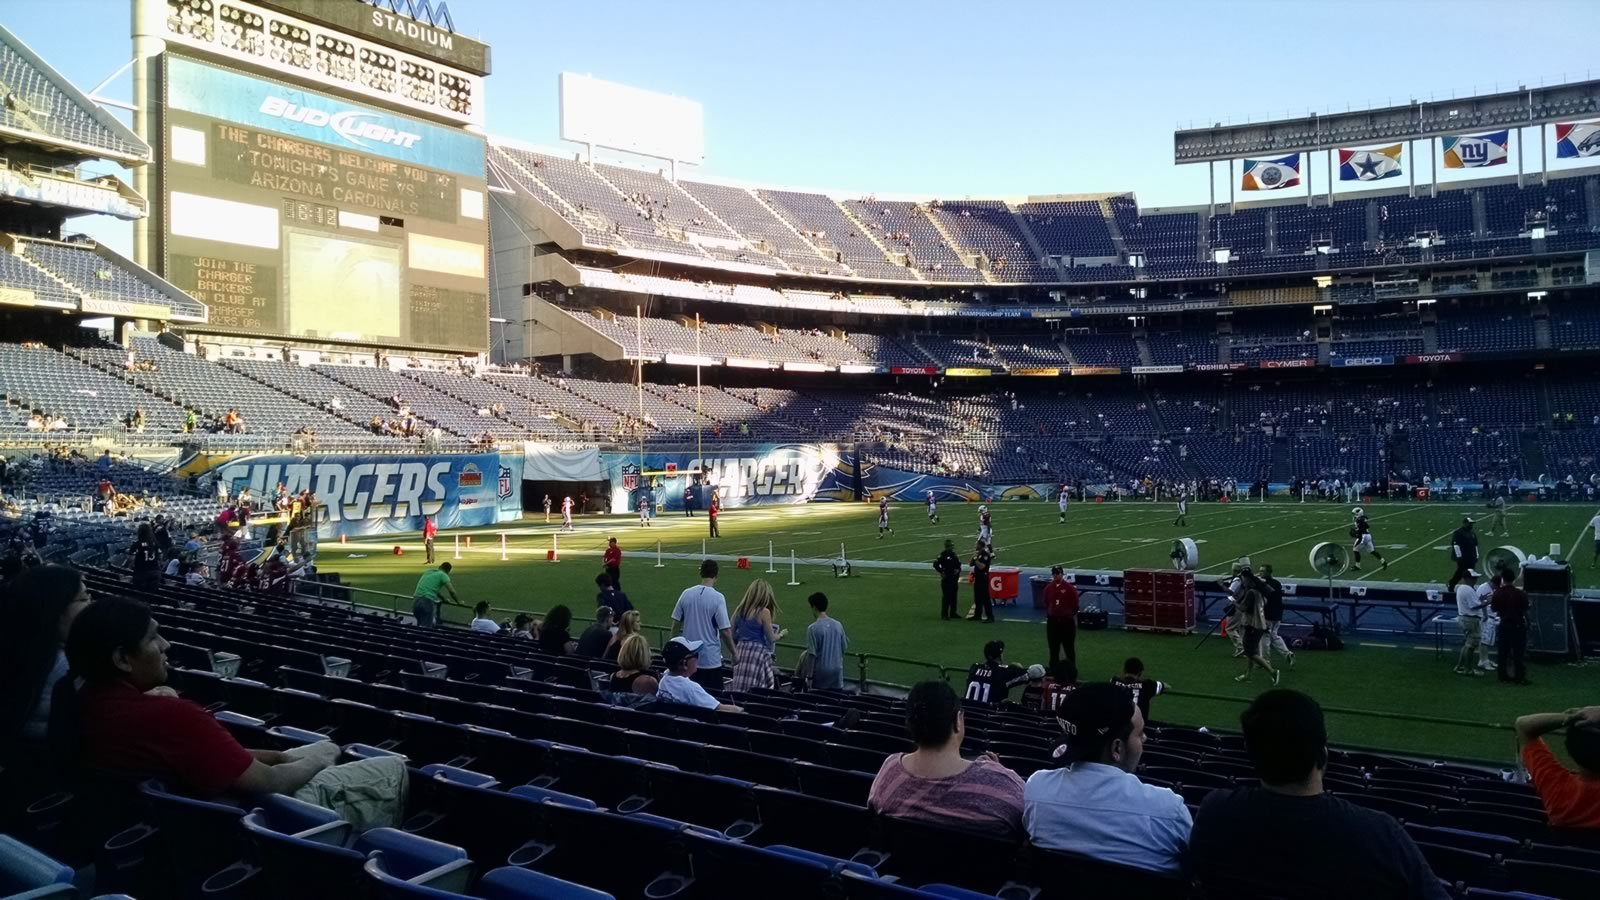 Seat View for Qualcomm Stadium Field 5